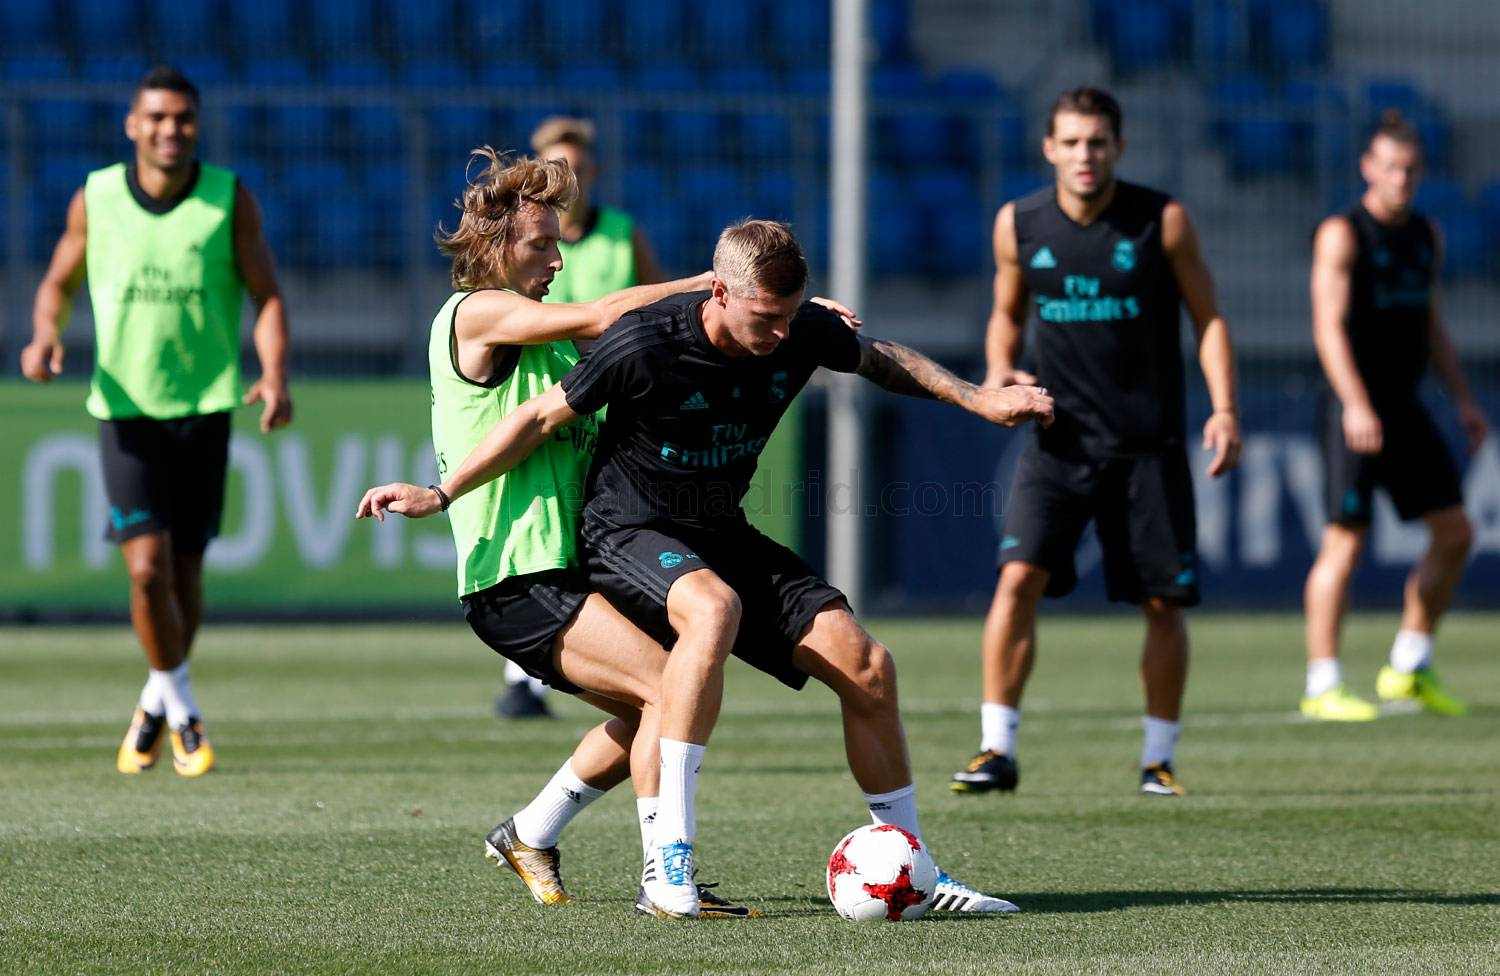 Real Madrid - Entrenamiento del Real Madrid - 15-08-2017